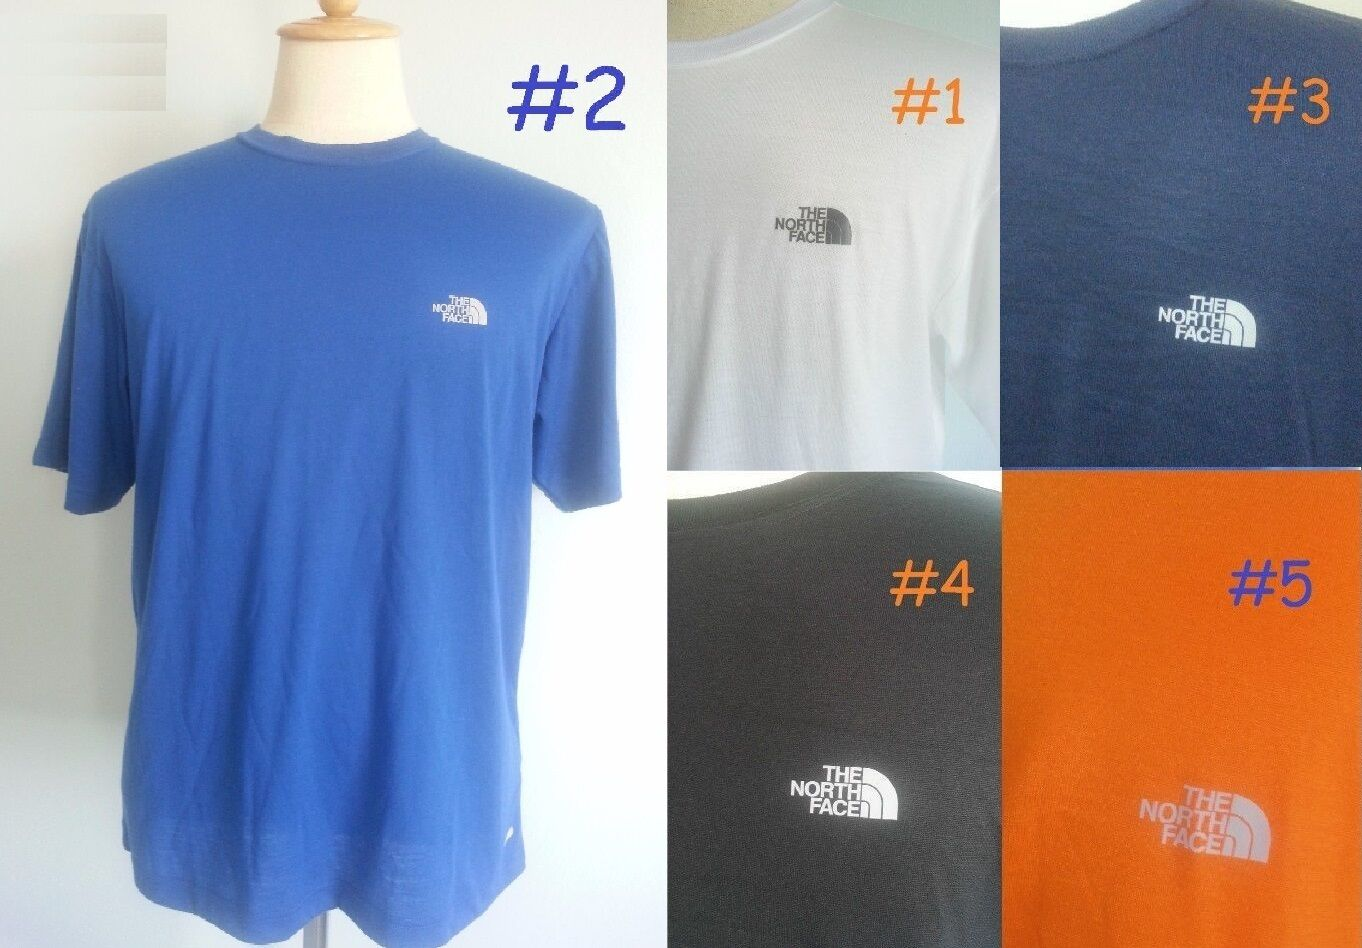 NEW The North Face Vaporwick Ruck Crew Neck Athletic T-Shirt Top Men M L XL XXL